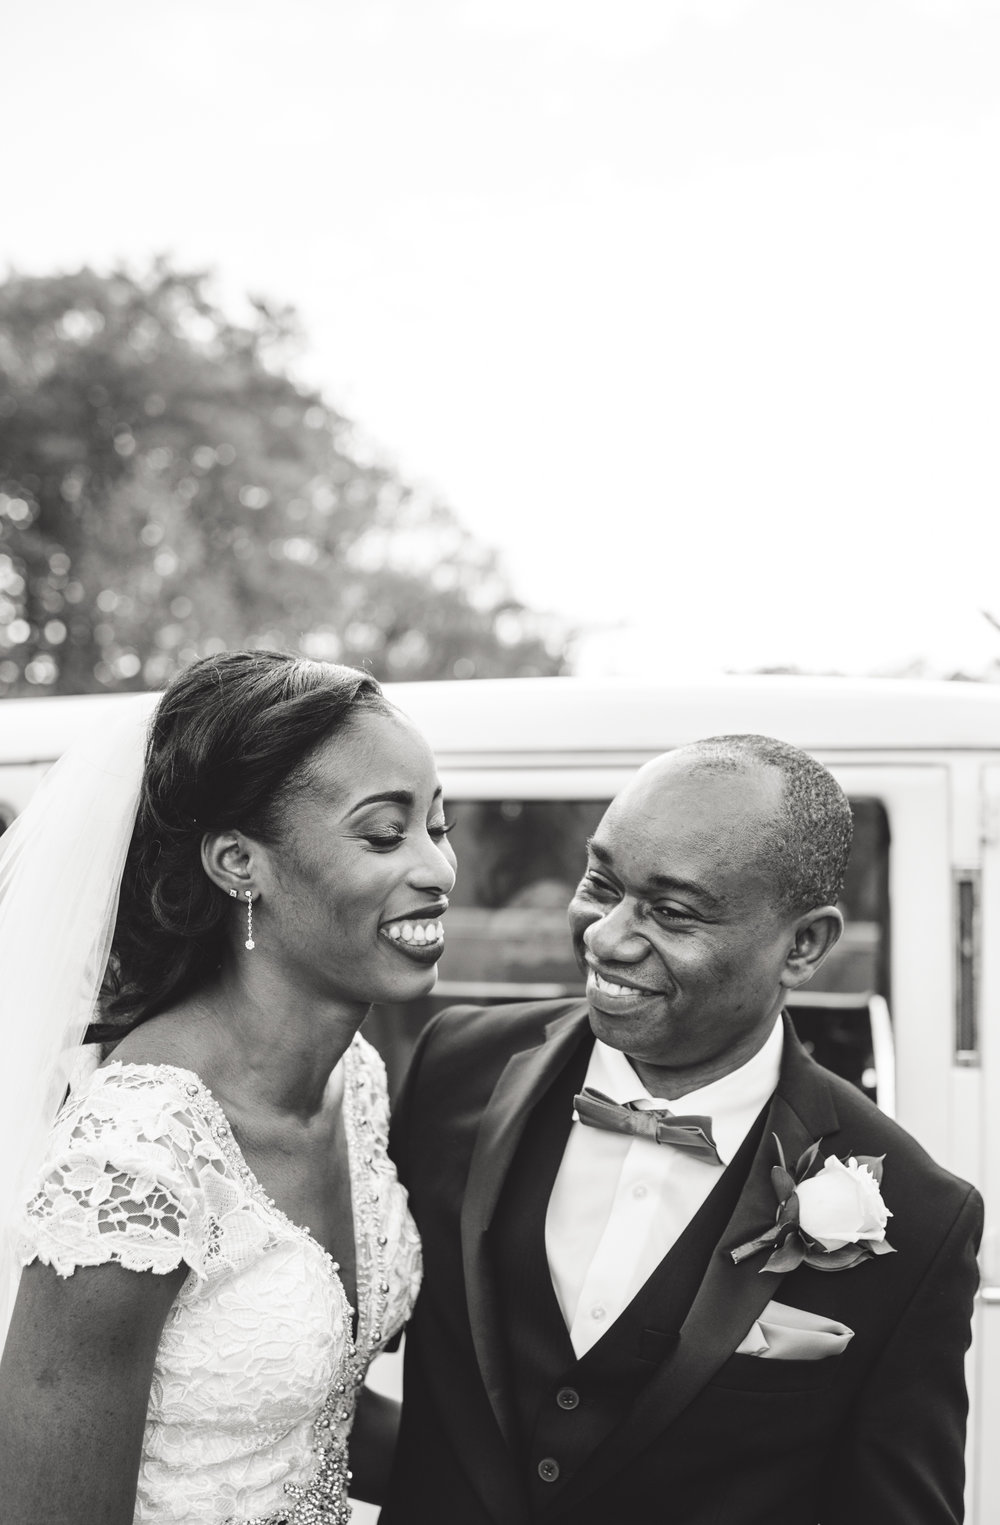 CHIMA & OBIOMA - STATEN ISLAND INTIMATE WEDDING PHOTOGRAPHER - TWOTWENTY by CHI-CHI AGBIM-214.jpg